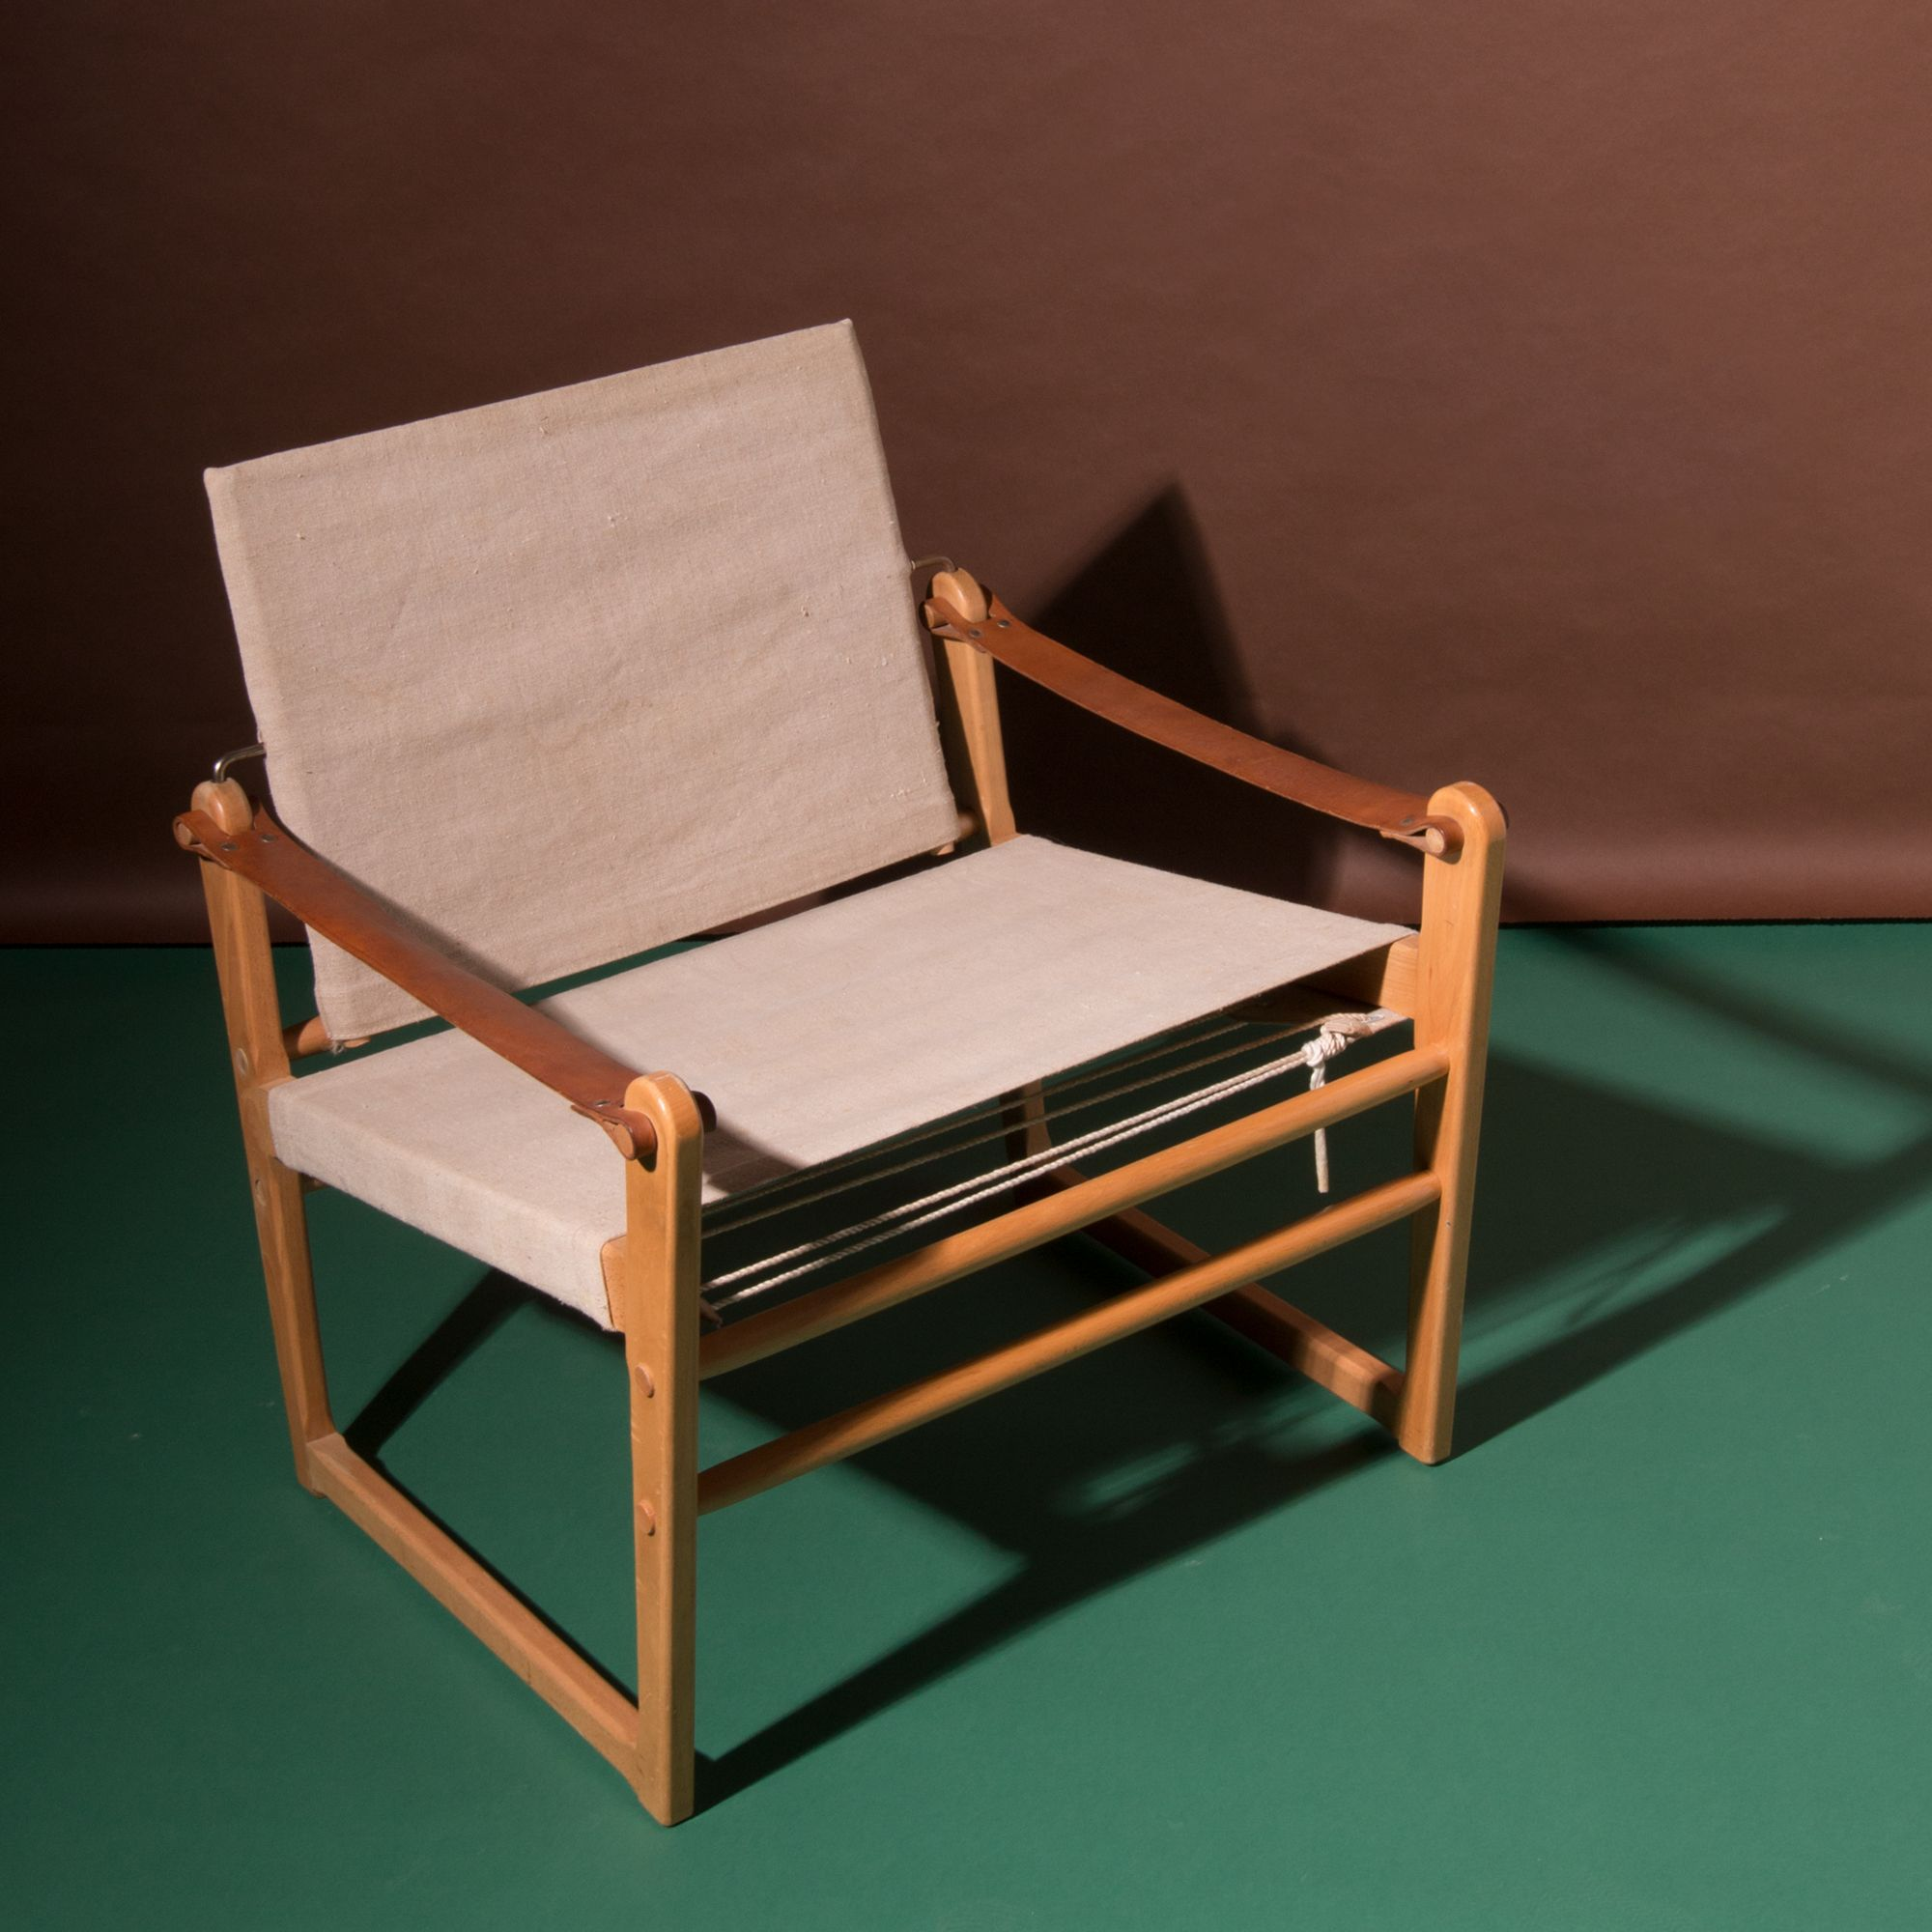 Bengt Ruda Safari Chairs From The 60s